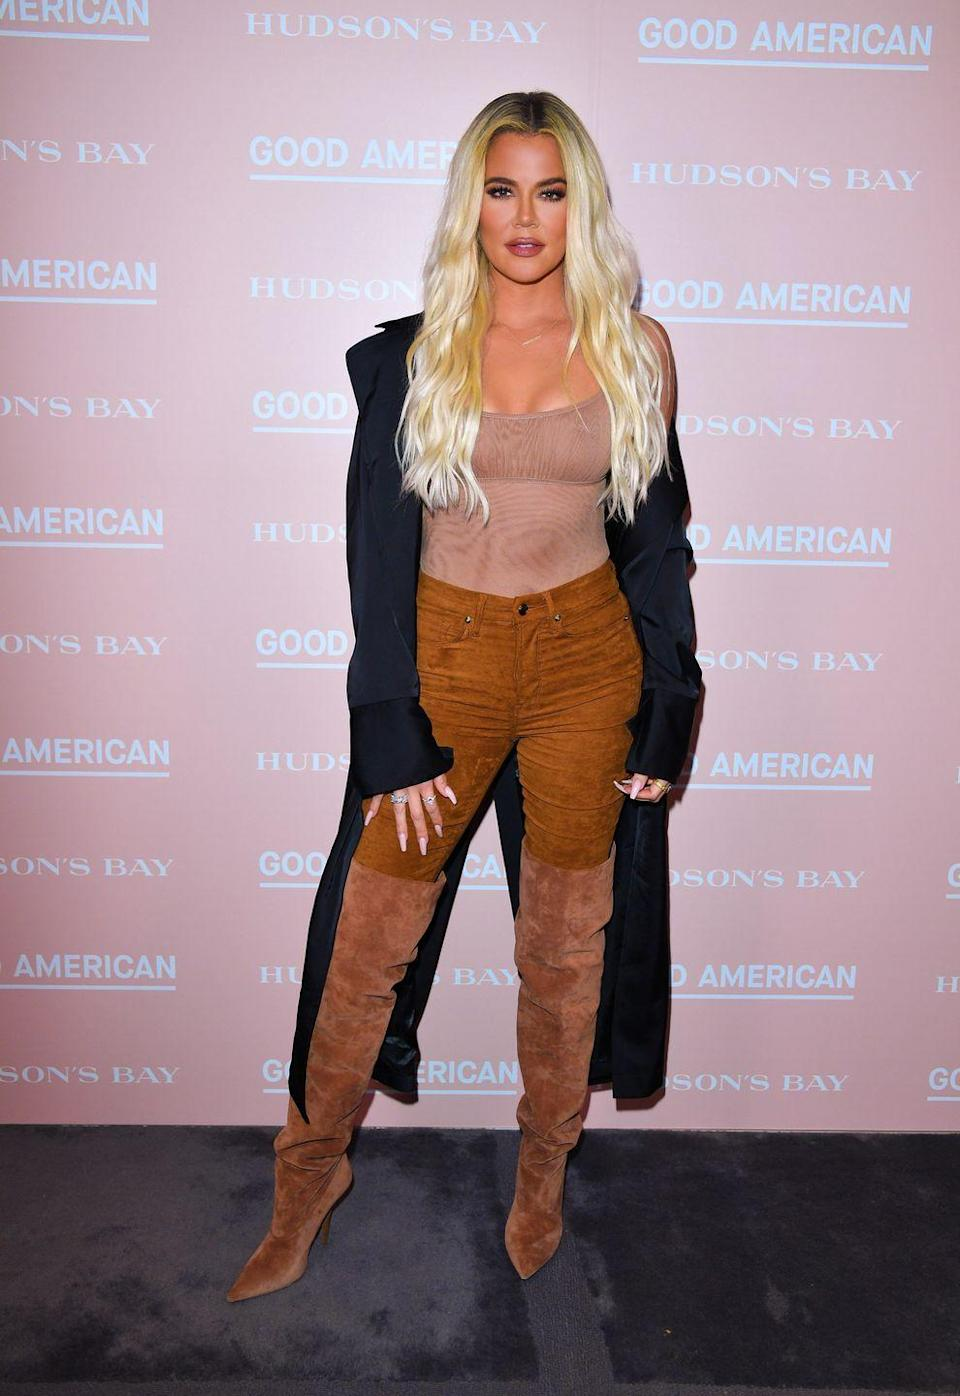 """<p>For dinner, Khloé usually has some of her favorite fish, like salmon, arctic char, or black cod. Her nutritionist <a href=""""https://www.healthista.com/celebrity-nutrition-secrets-khloe-kardashians-diet-revealed-nutritionist/"""" rel=""""nofollow noopener"""" target=""""_blank"""" data-ylk=""""slk:adds"""" class=""""link rapid-noclick-resp"""">adds</a> that it's always balanced out with at least eight ounces of veggies and salad. </p>"""